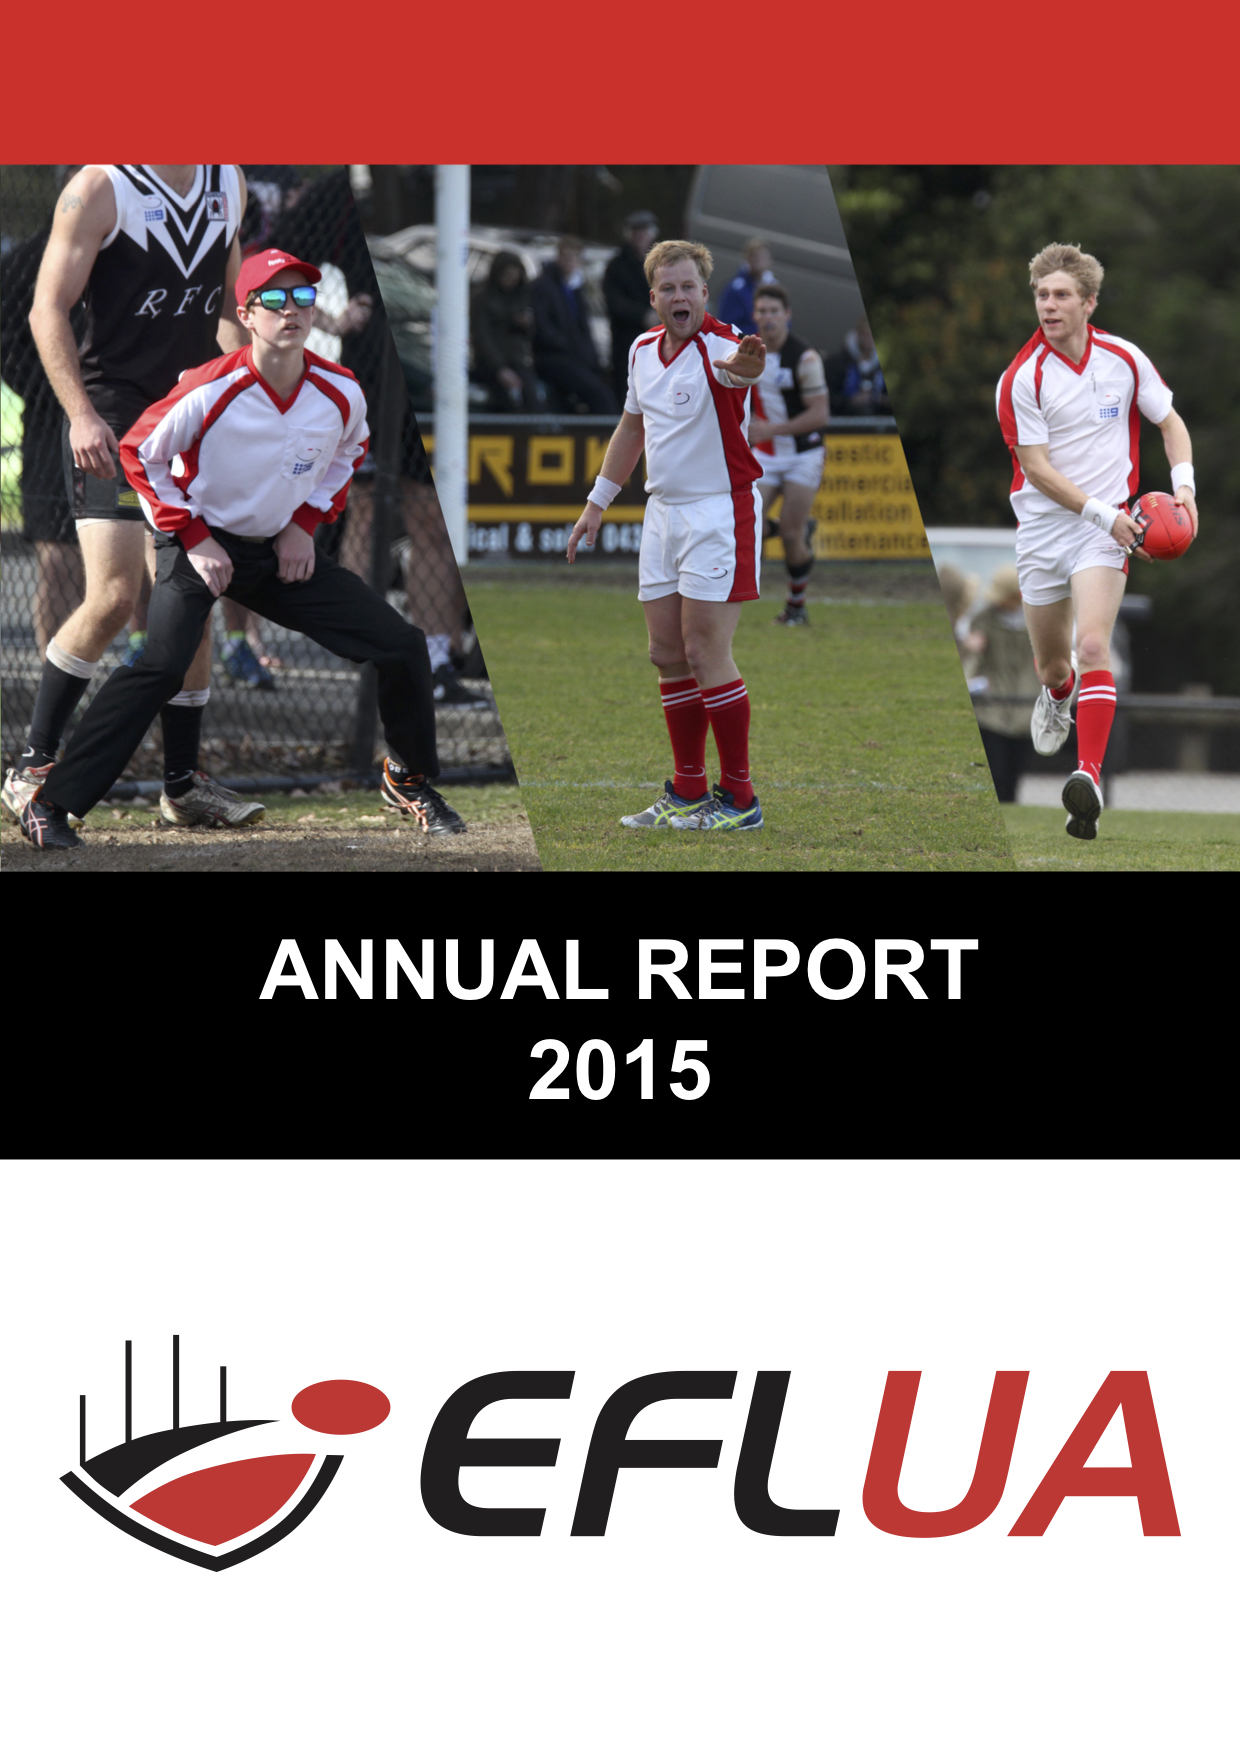 2015 Annual Report IMAGE.jpg